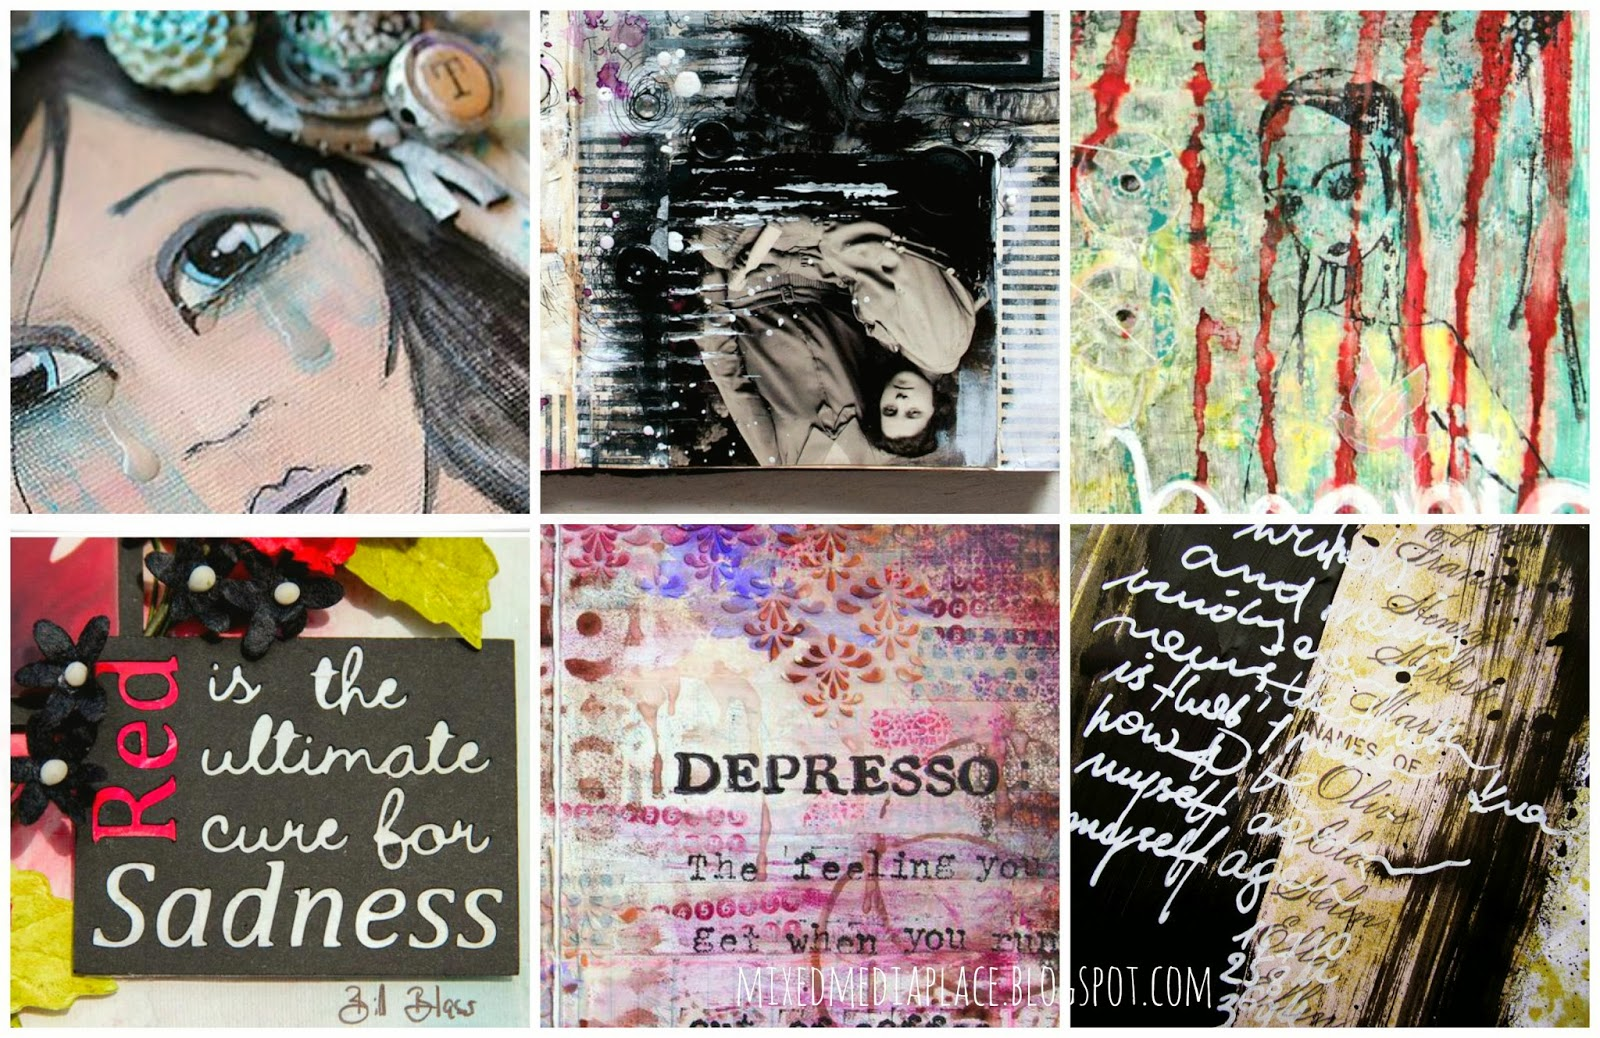 http://mixedmediaplace.blogspot.com/2014/02/what-are-you-feeling-vol-3.html